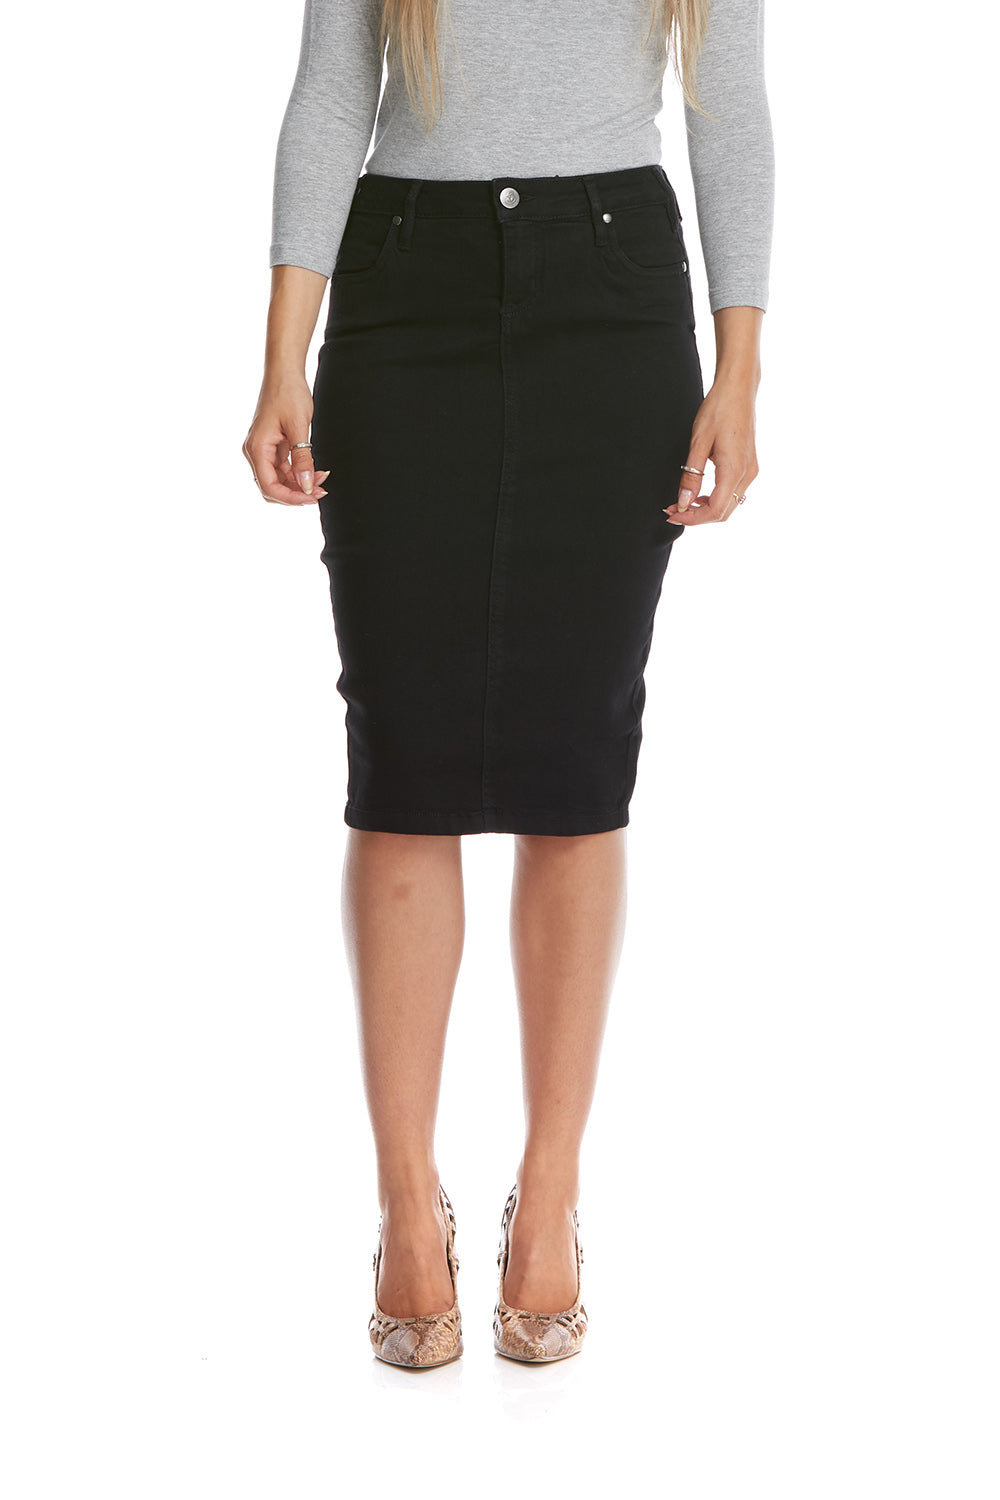 Esteez MIAMI Skirt - Powerstretch Jean Skirt with Tummy Control for WOMEN